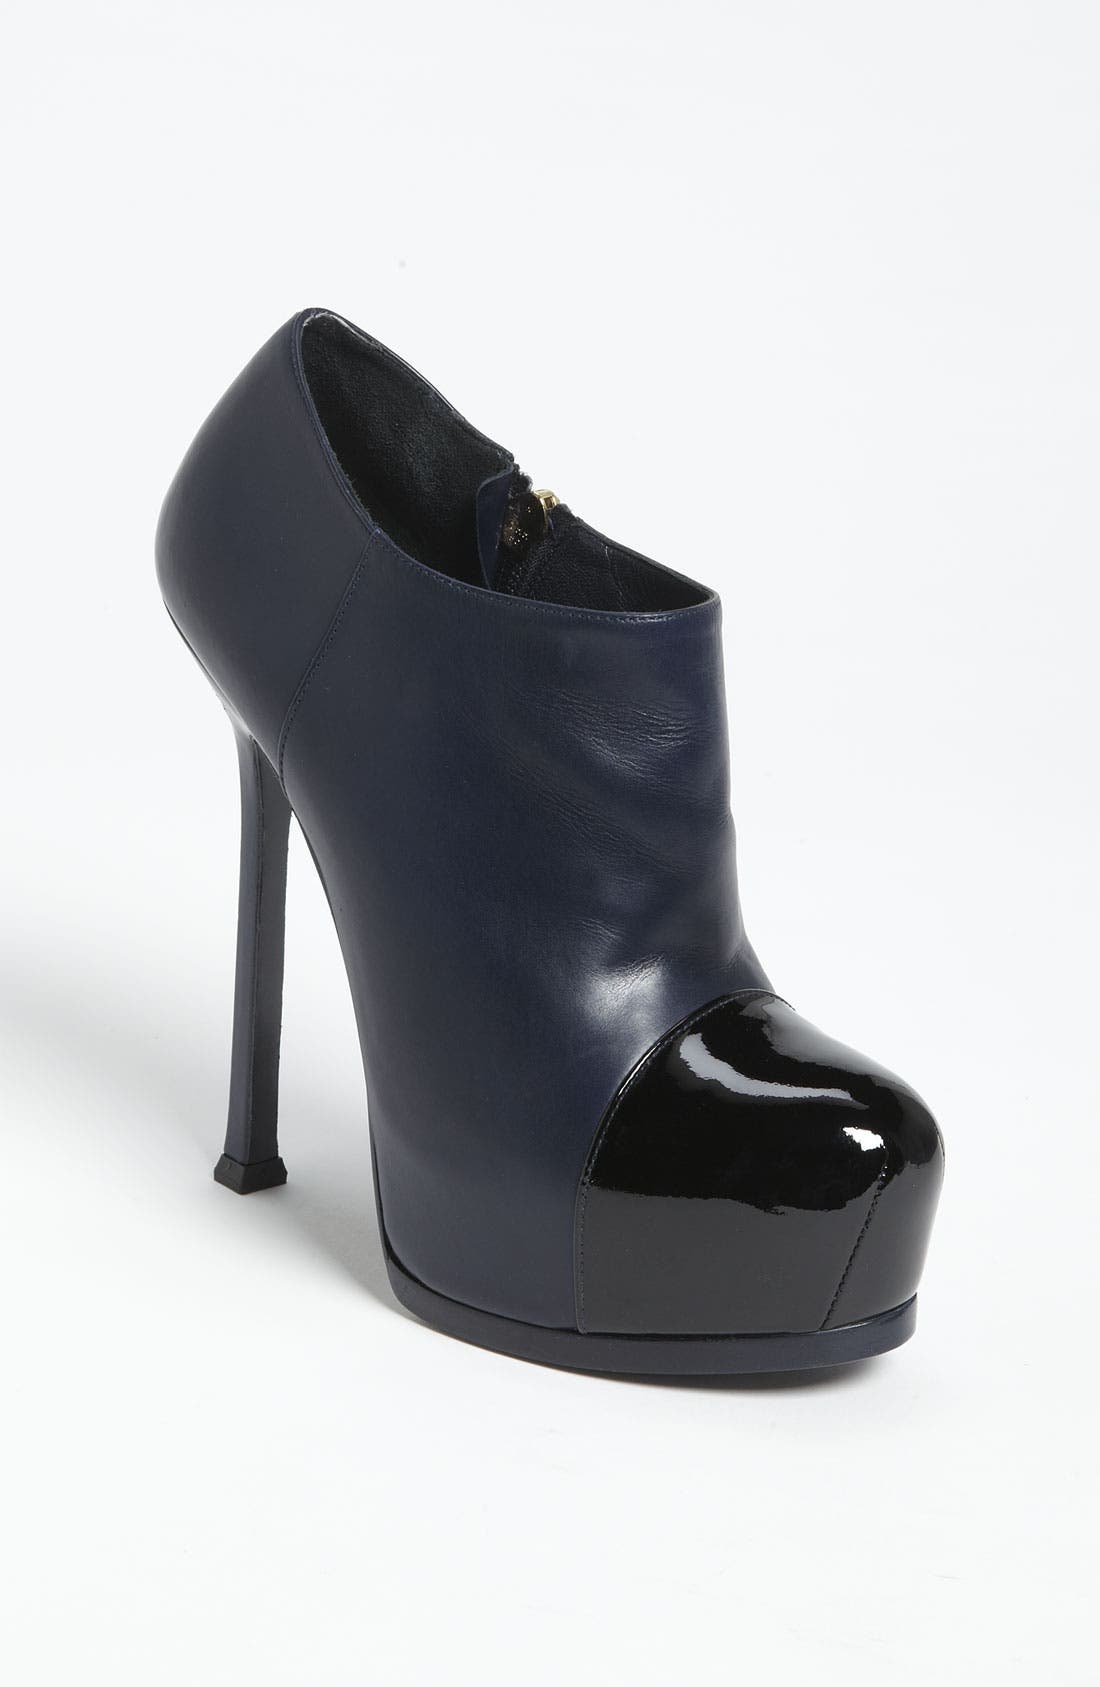 Alternate Image 1 Selected - Yves Saint Laurent 'Tribtoo' Platform Bootie